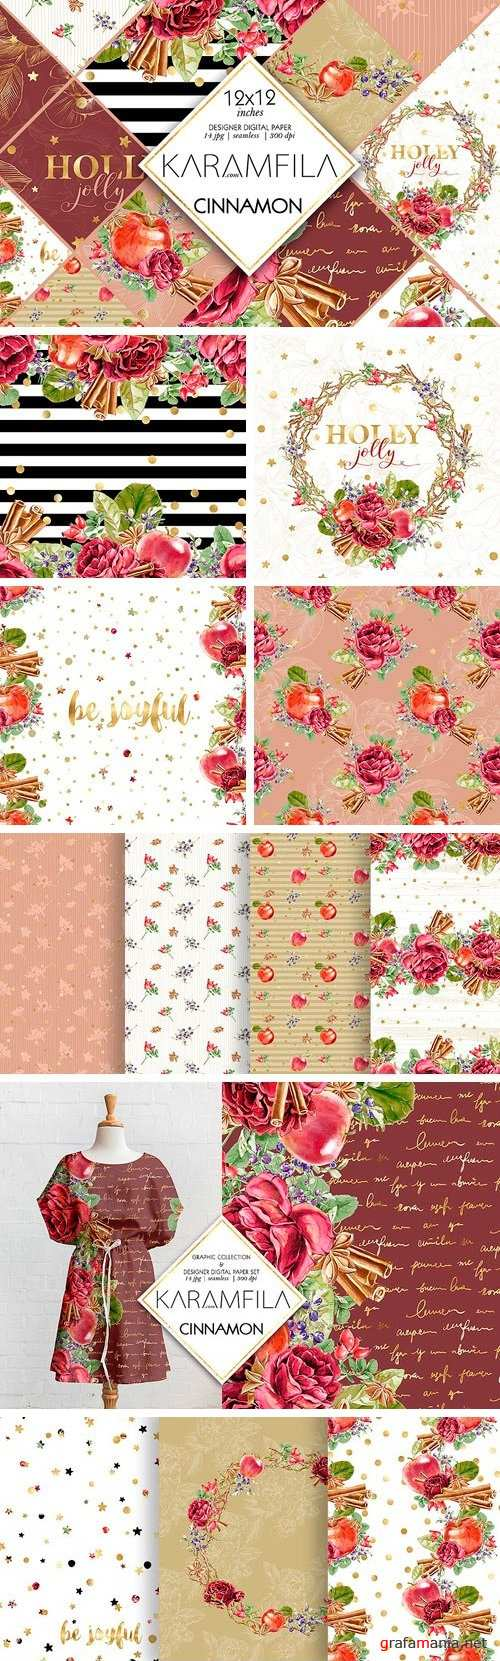 Cinnamon and Apples Patterns 1792682